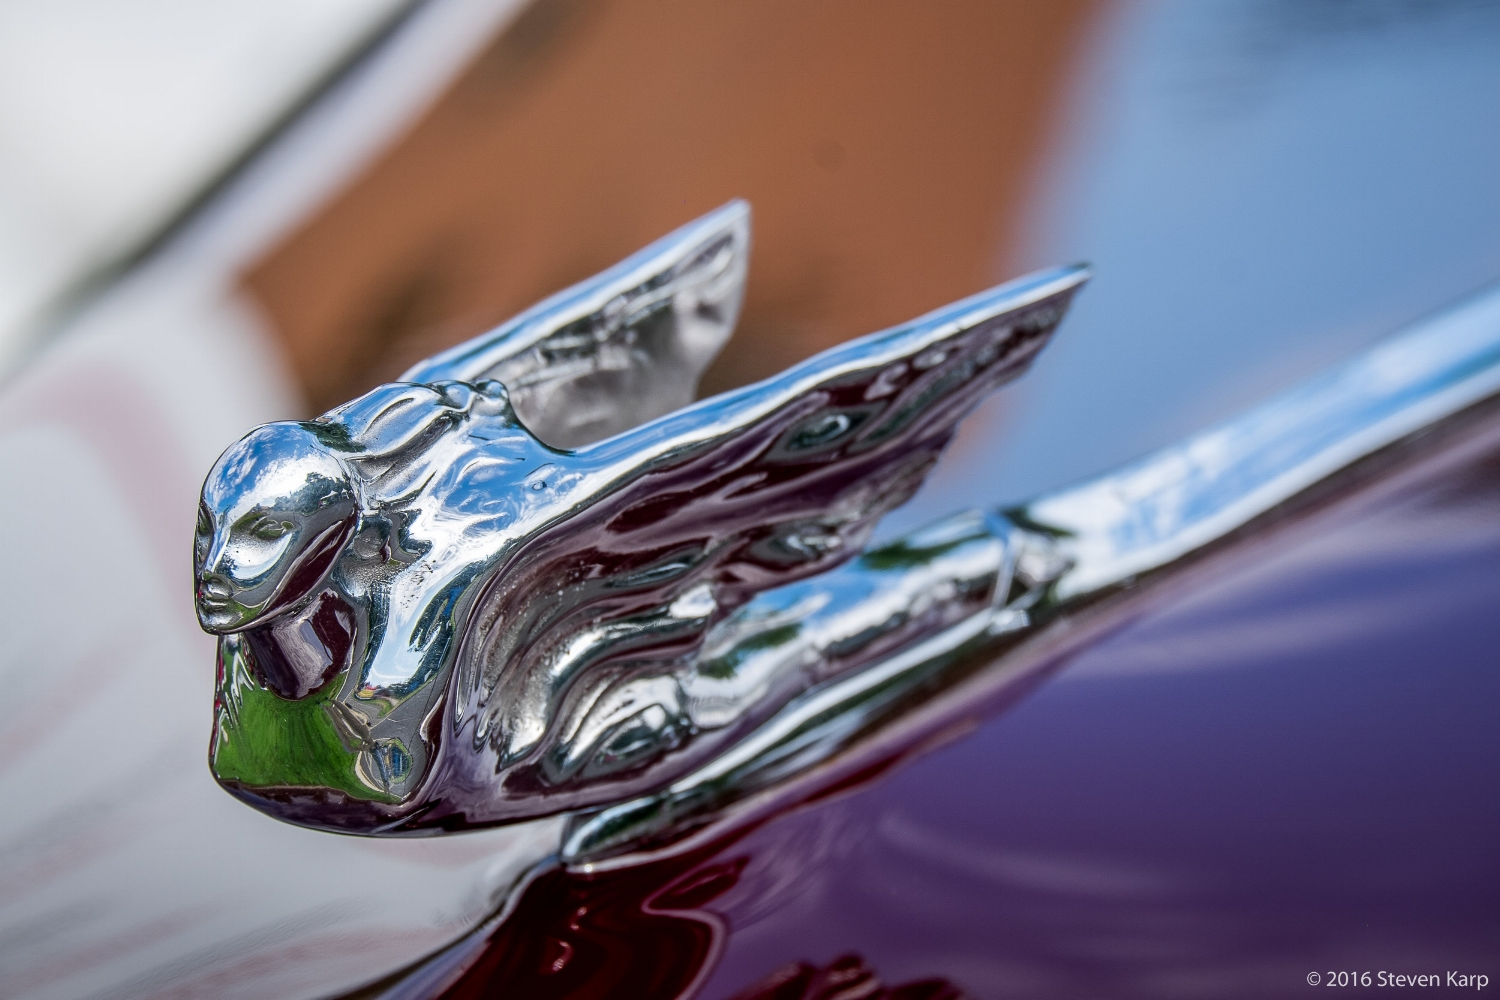 1941 Cadillac Hood Ornament